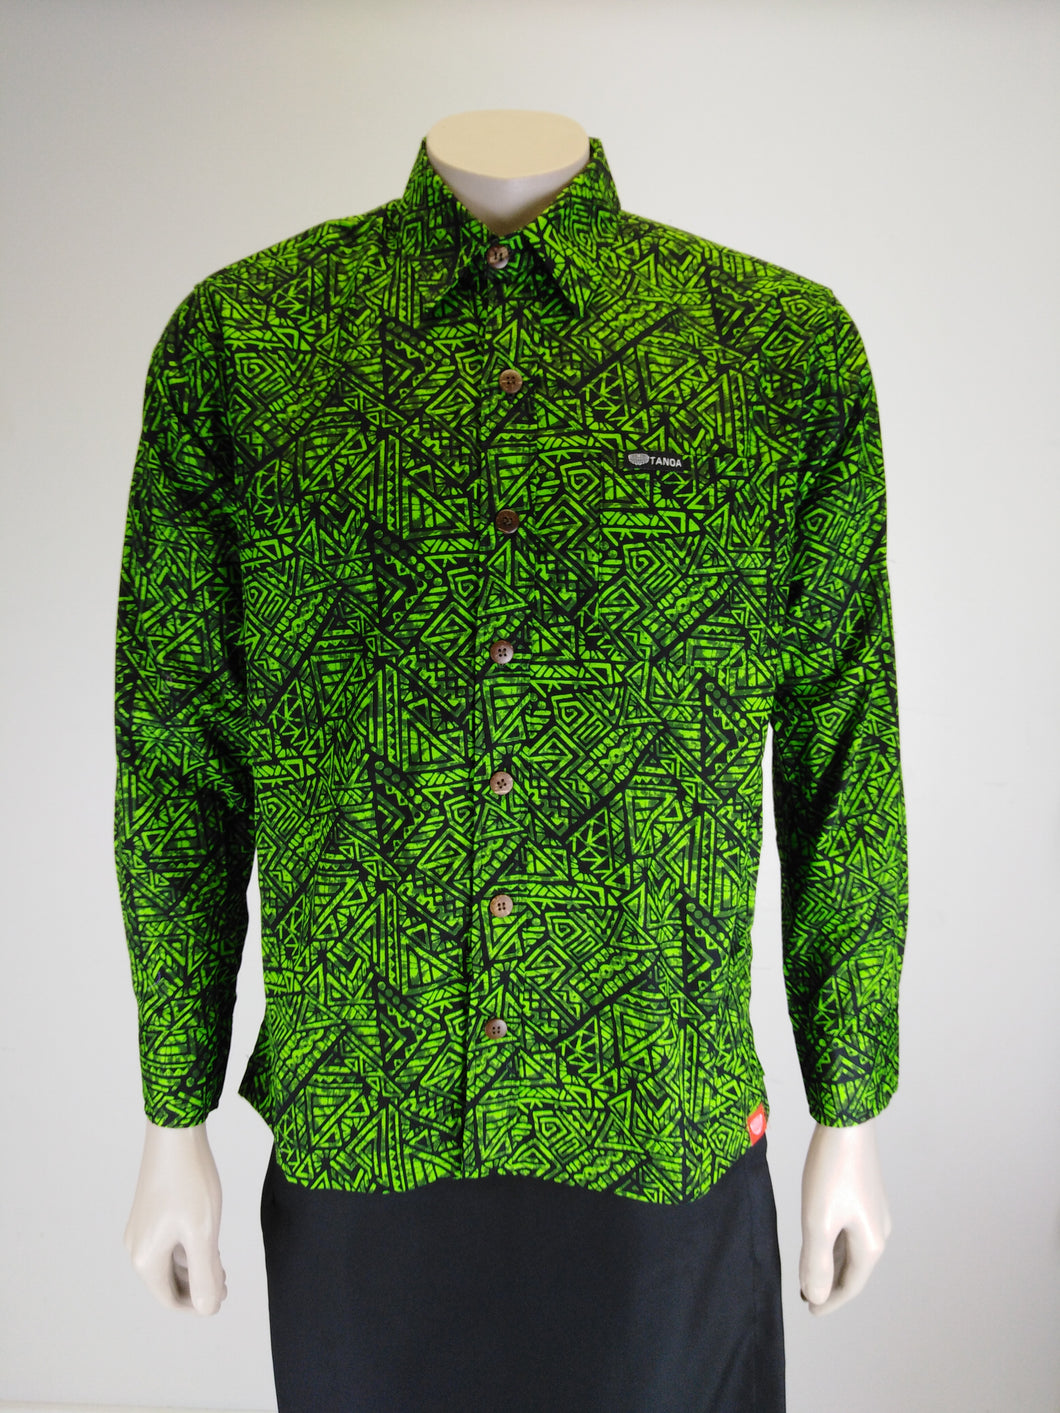 Tanoa Men's L/S Shirt SL1206 Green